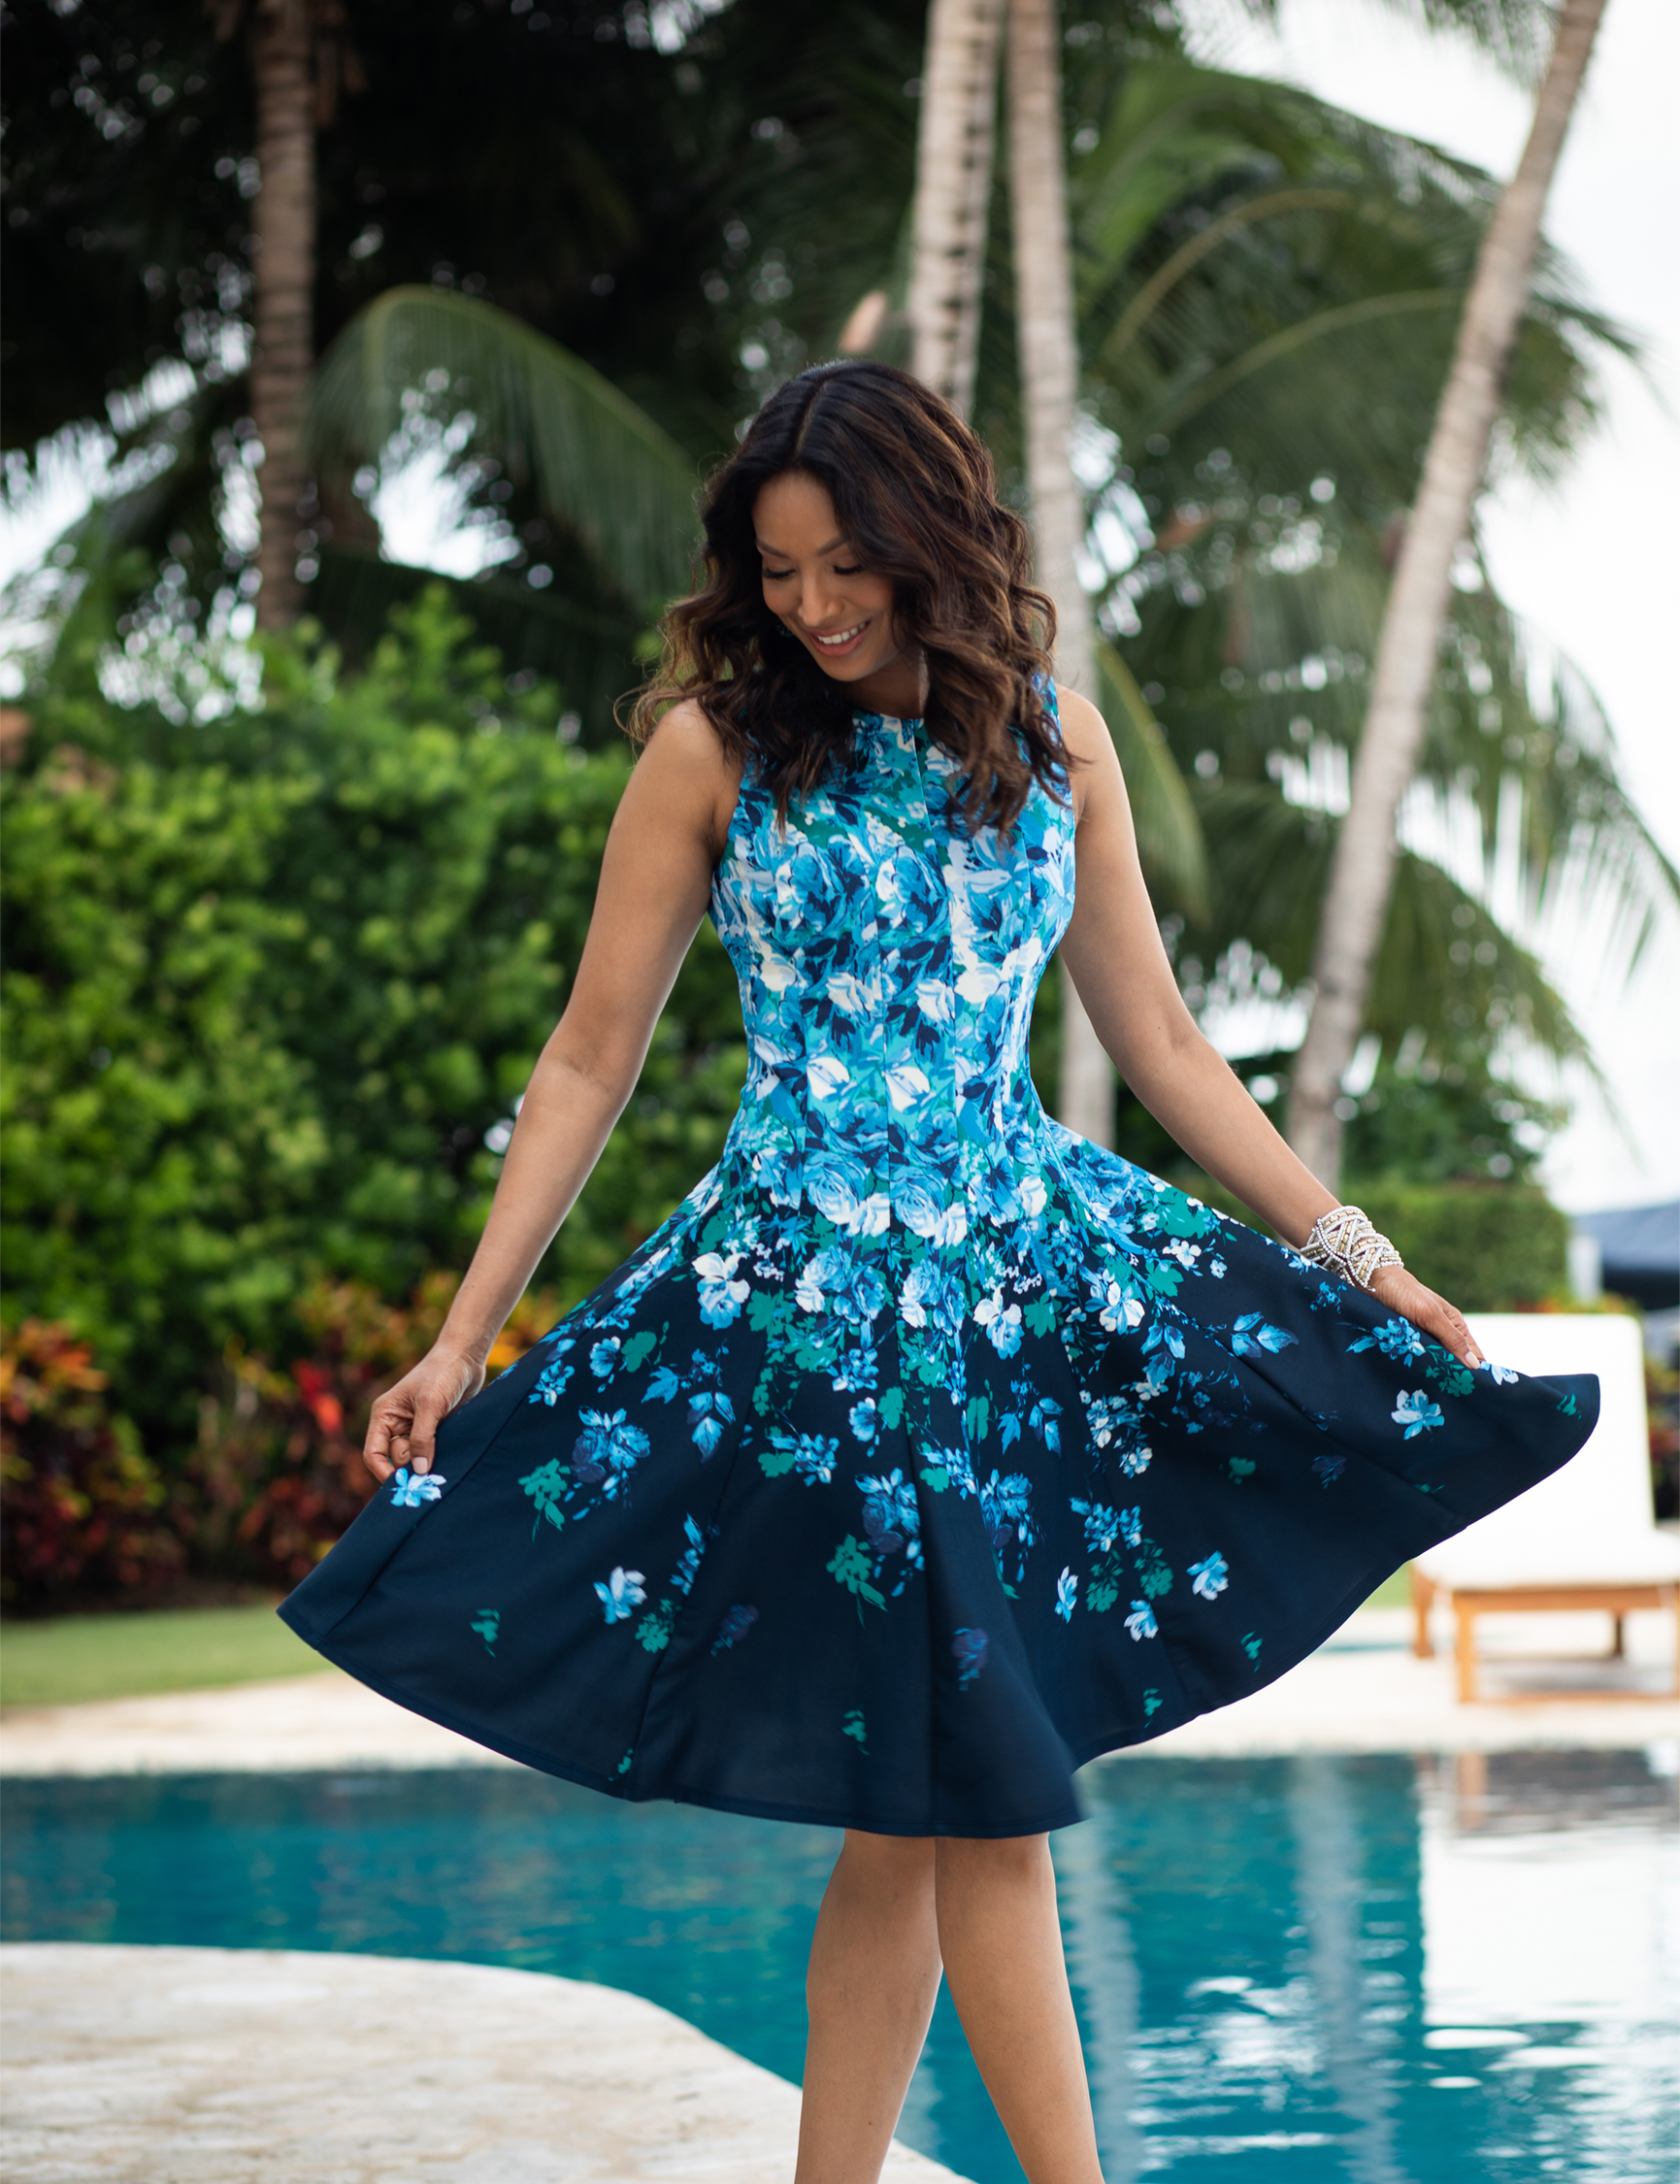 Falling Floral Fit and Flare Dress - Misses - Navy/Teal - Front